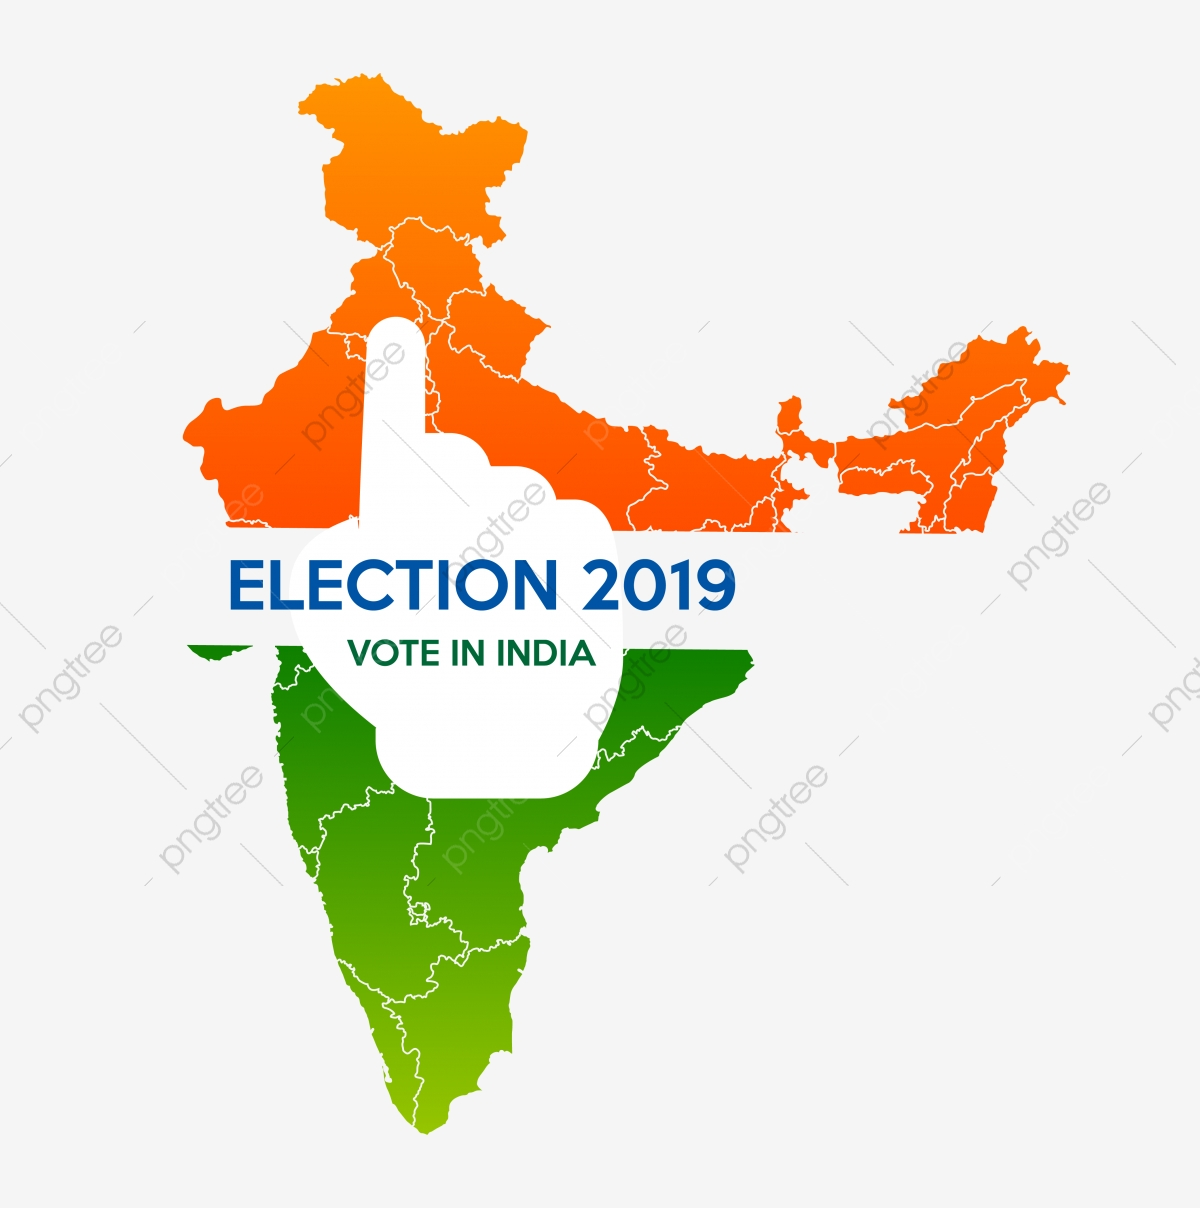 Vote In India Election 2019, Election, India, Vote PNG and Vector.